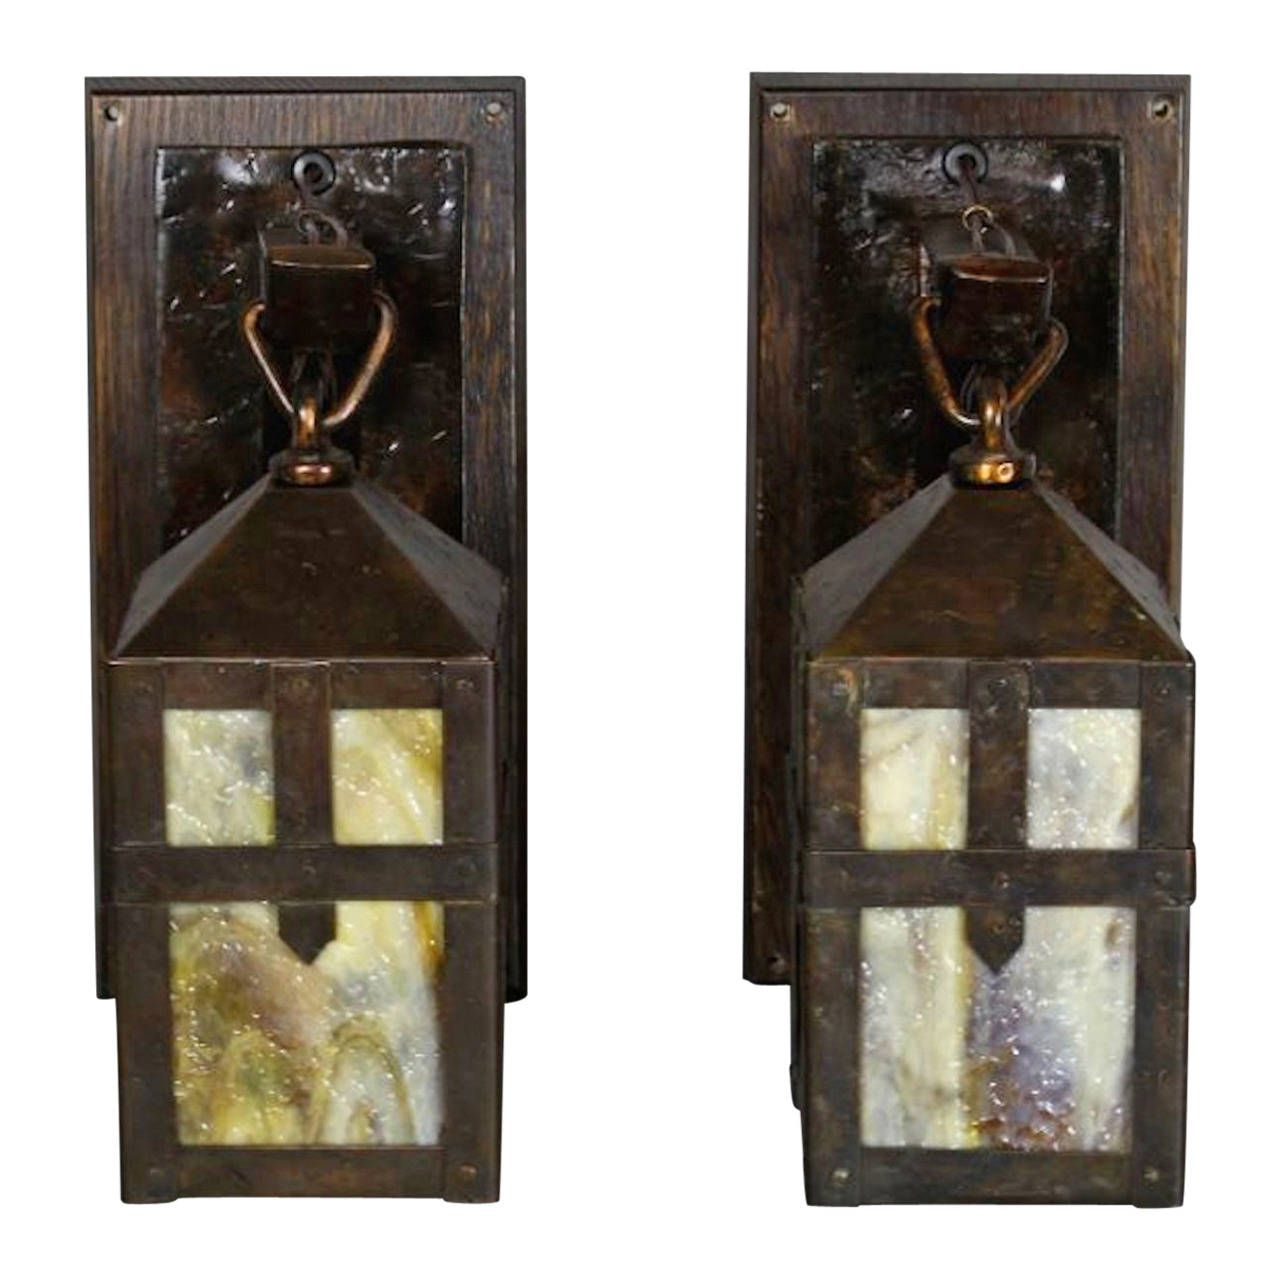 (Chicago & Philadelphia) Monk Lantern Sconces - Pair Of Sears, Roebuck & Co. (Chicago & Philadelphia) Monk Lantern